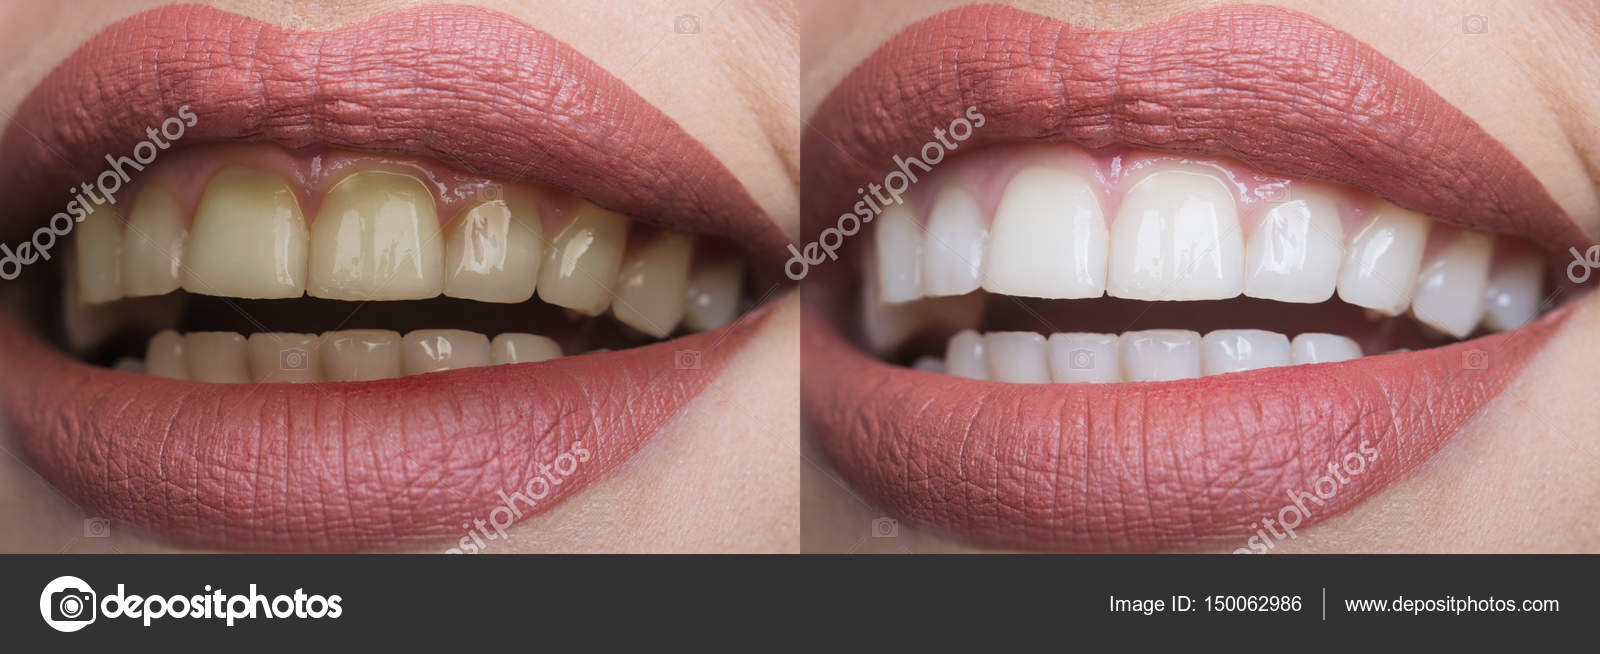 Clareamento No Dentista Estomatologia E Clinica Dentaria Conceito